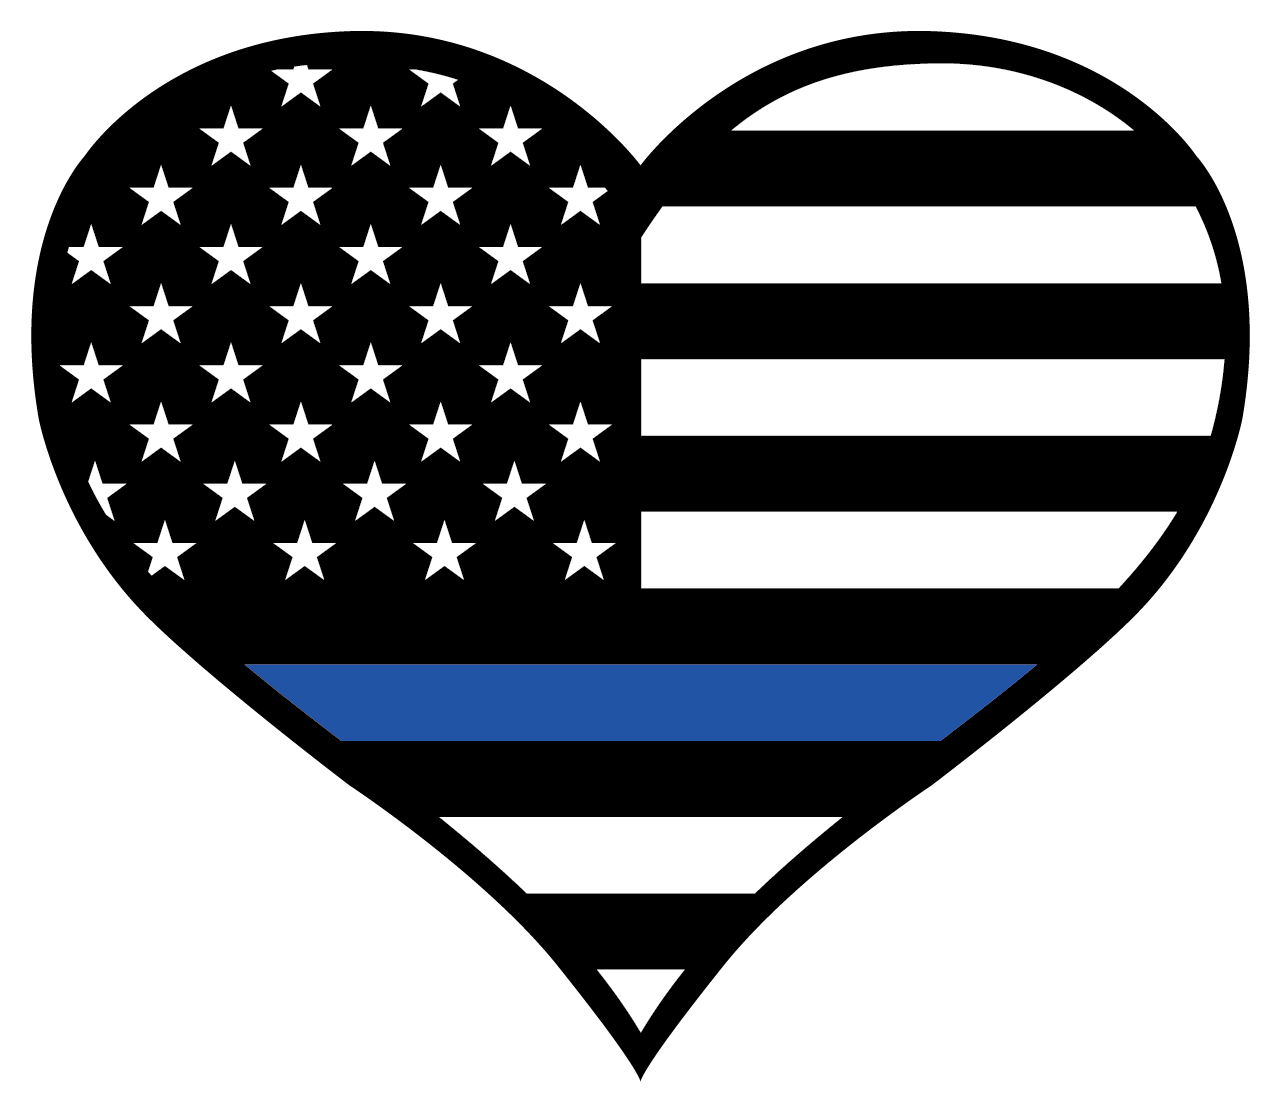 Thin blue line heart. Hearts clipart flag